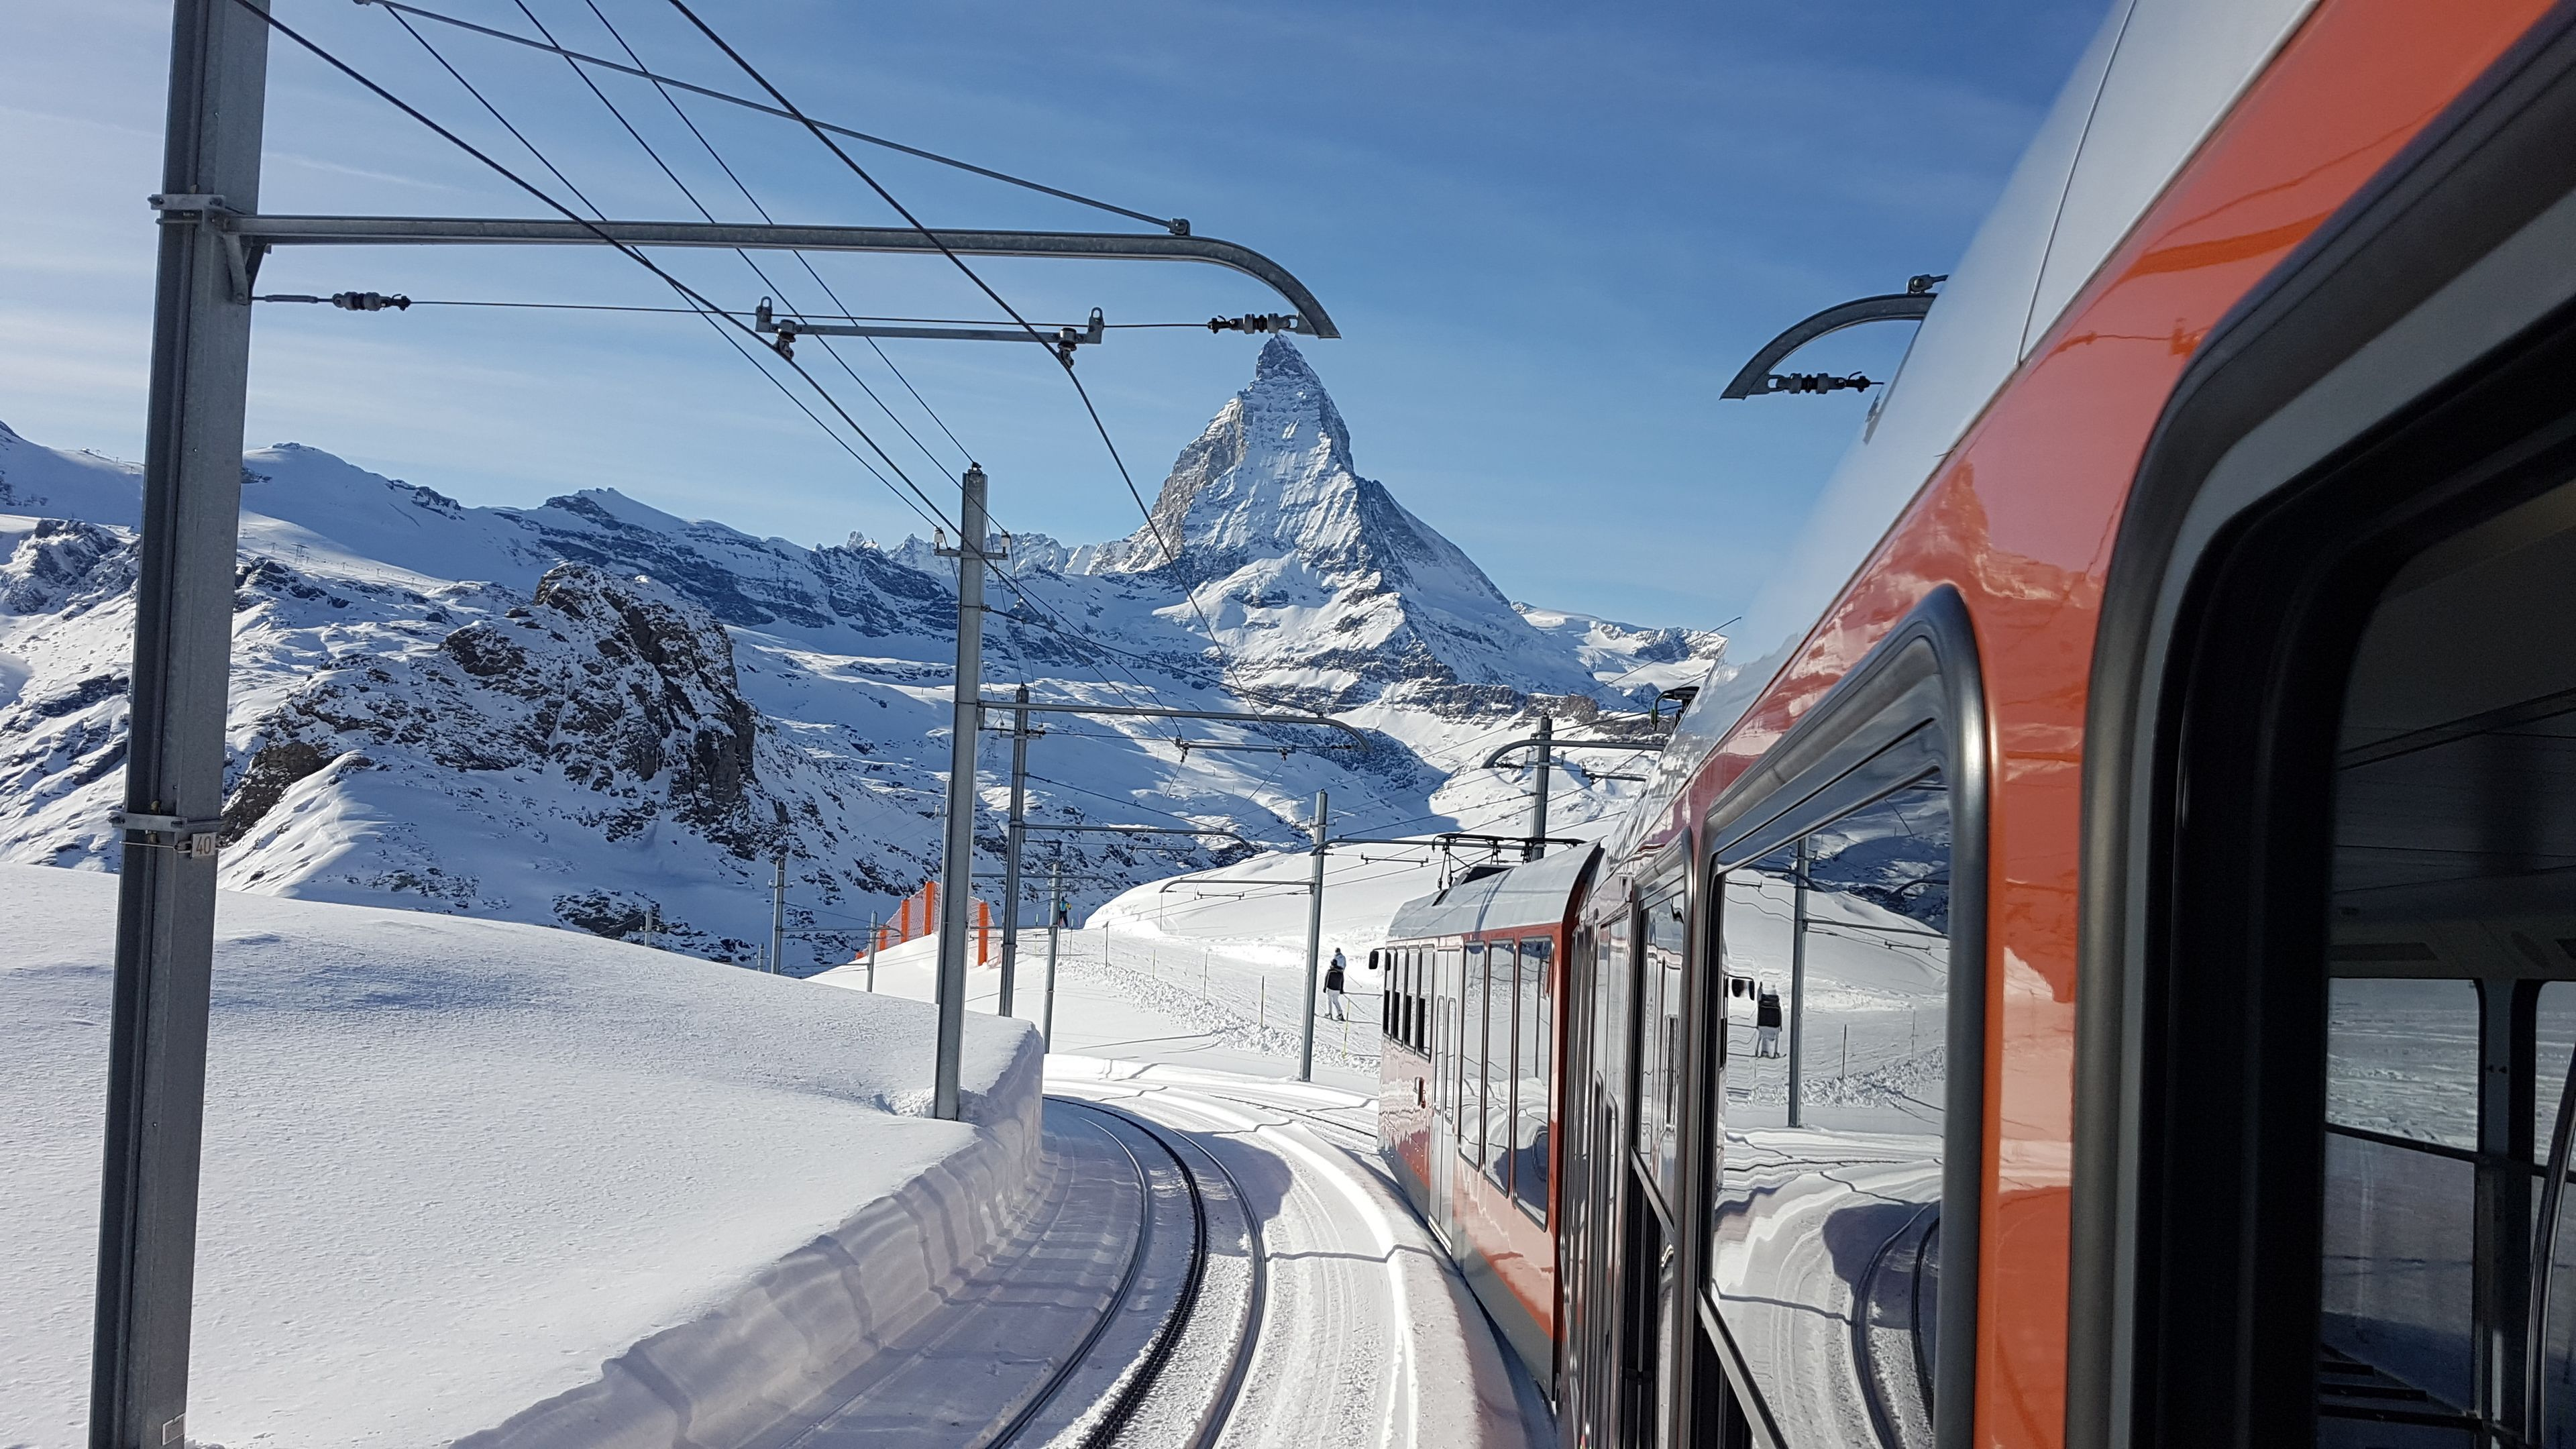 Zermatt & Gornergrat (Matterhorn area) from Zurich